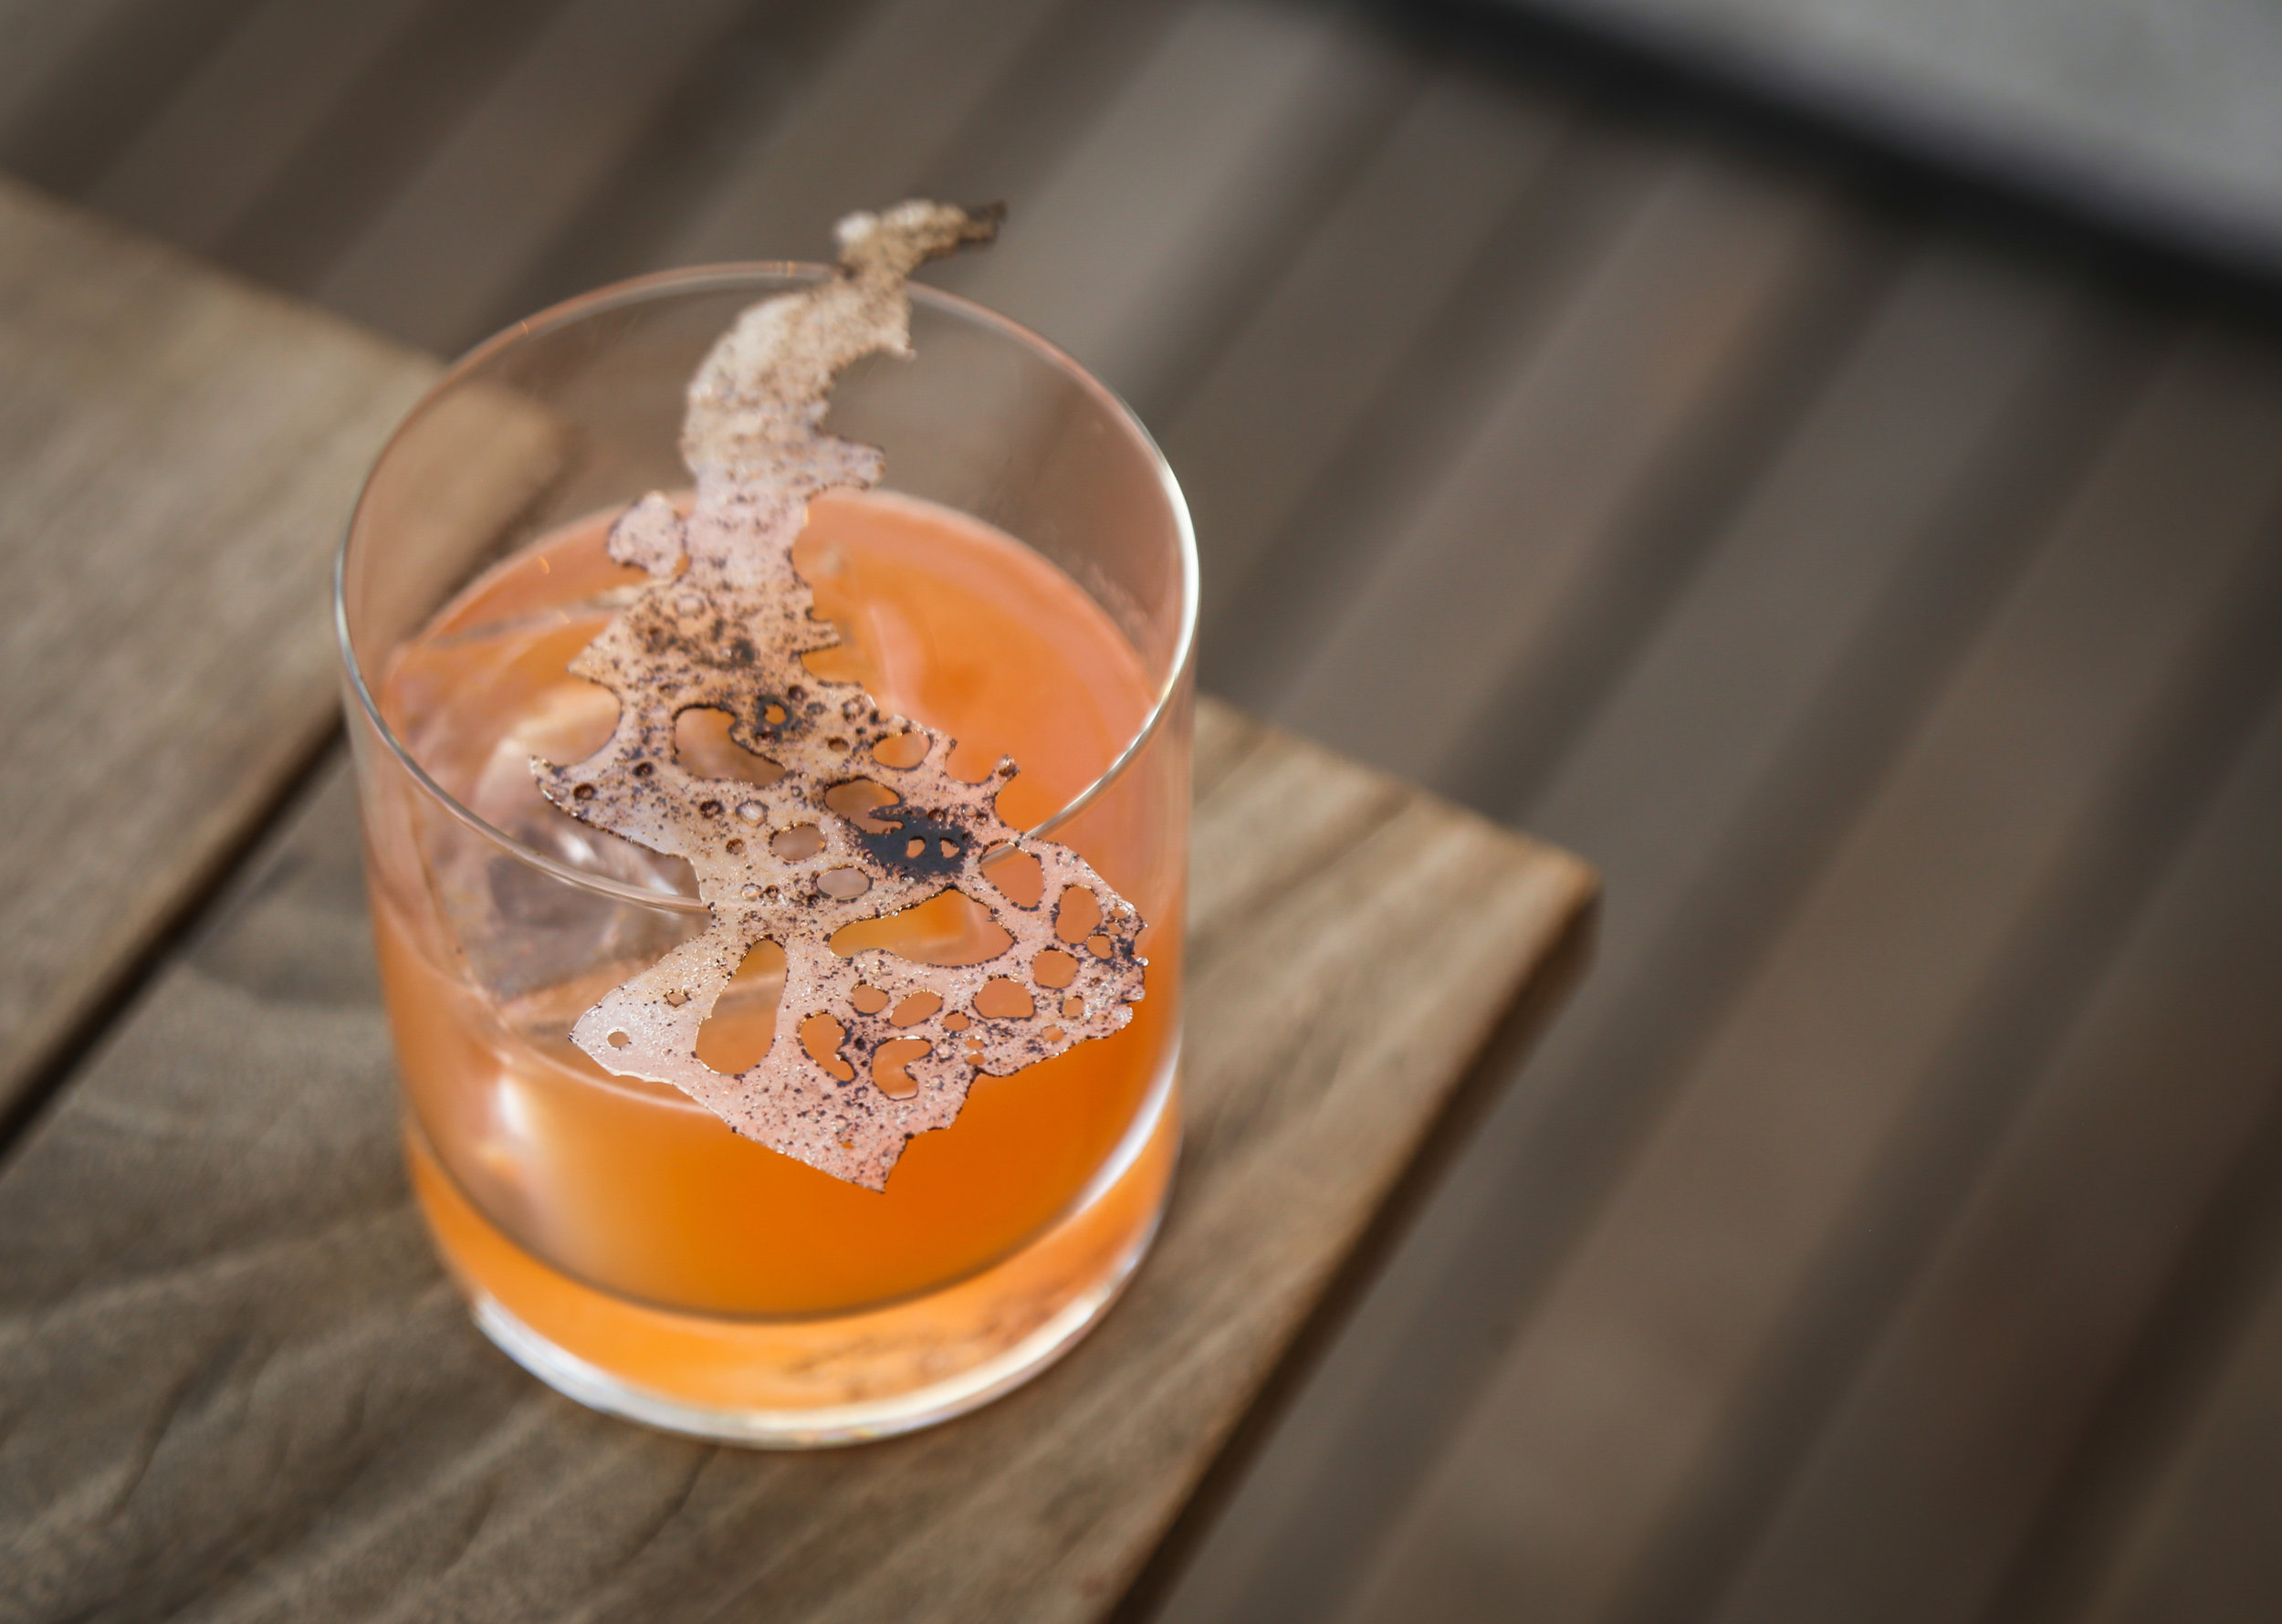 Armonía cocktail by Chris Amirault | Photo by Eugene Lee